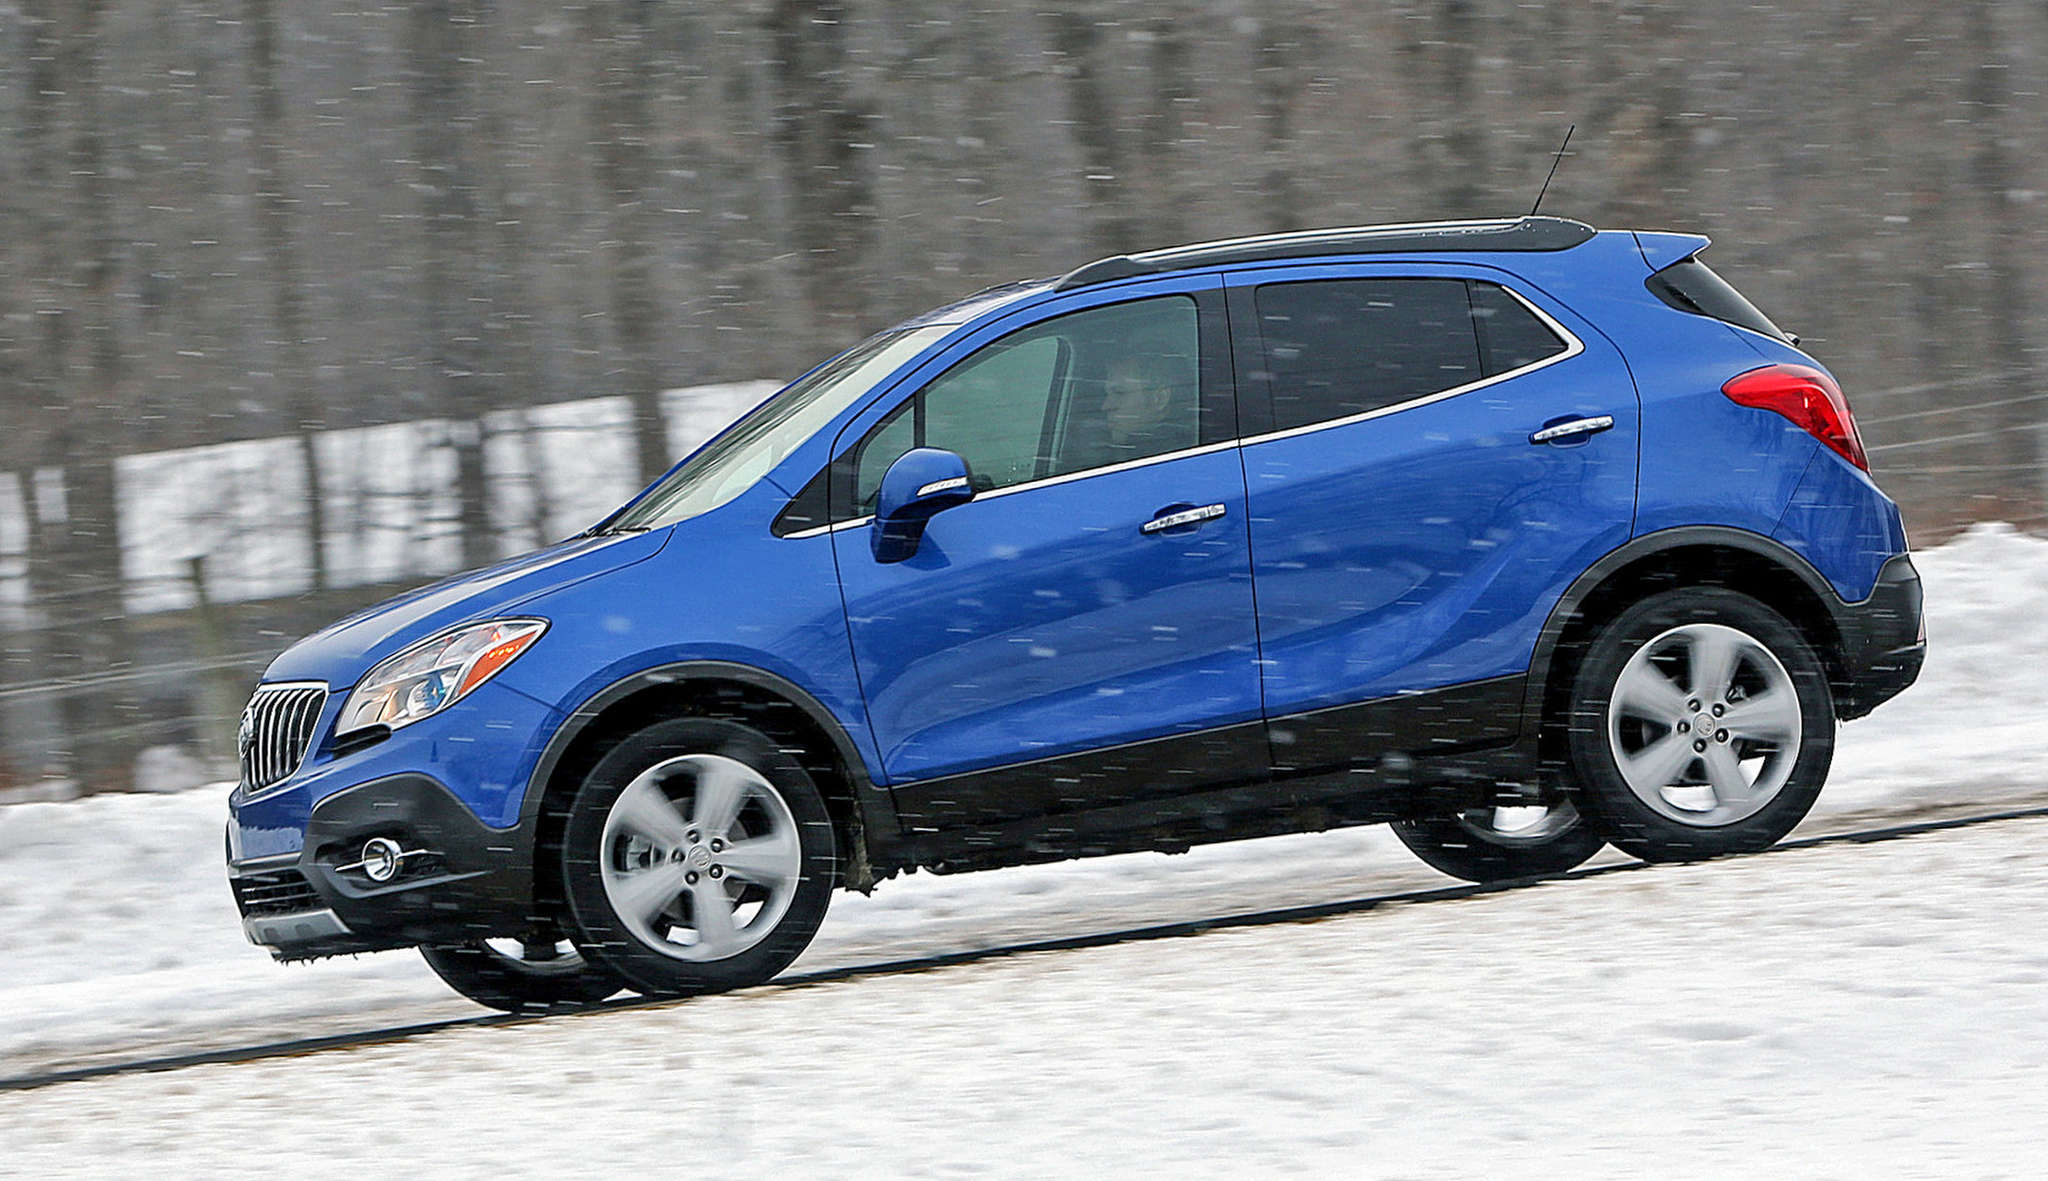 The Buick Encore is cute as a button, but isshort on the cargo space.